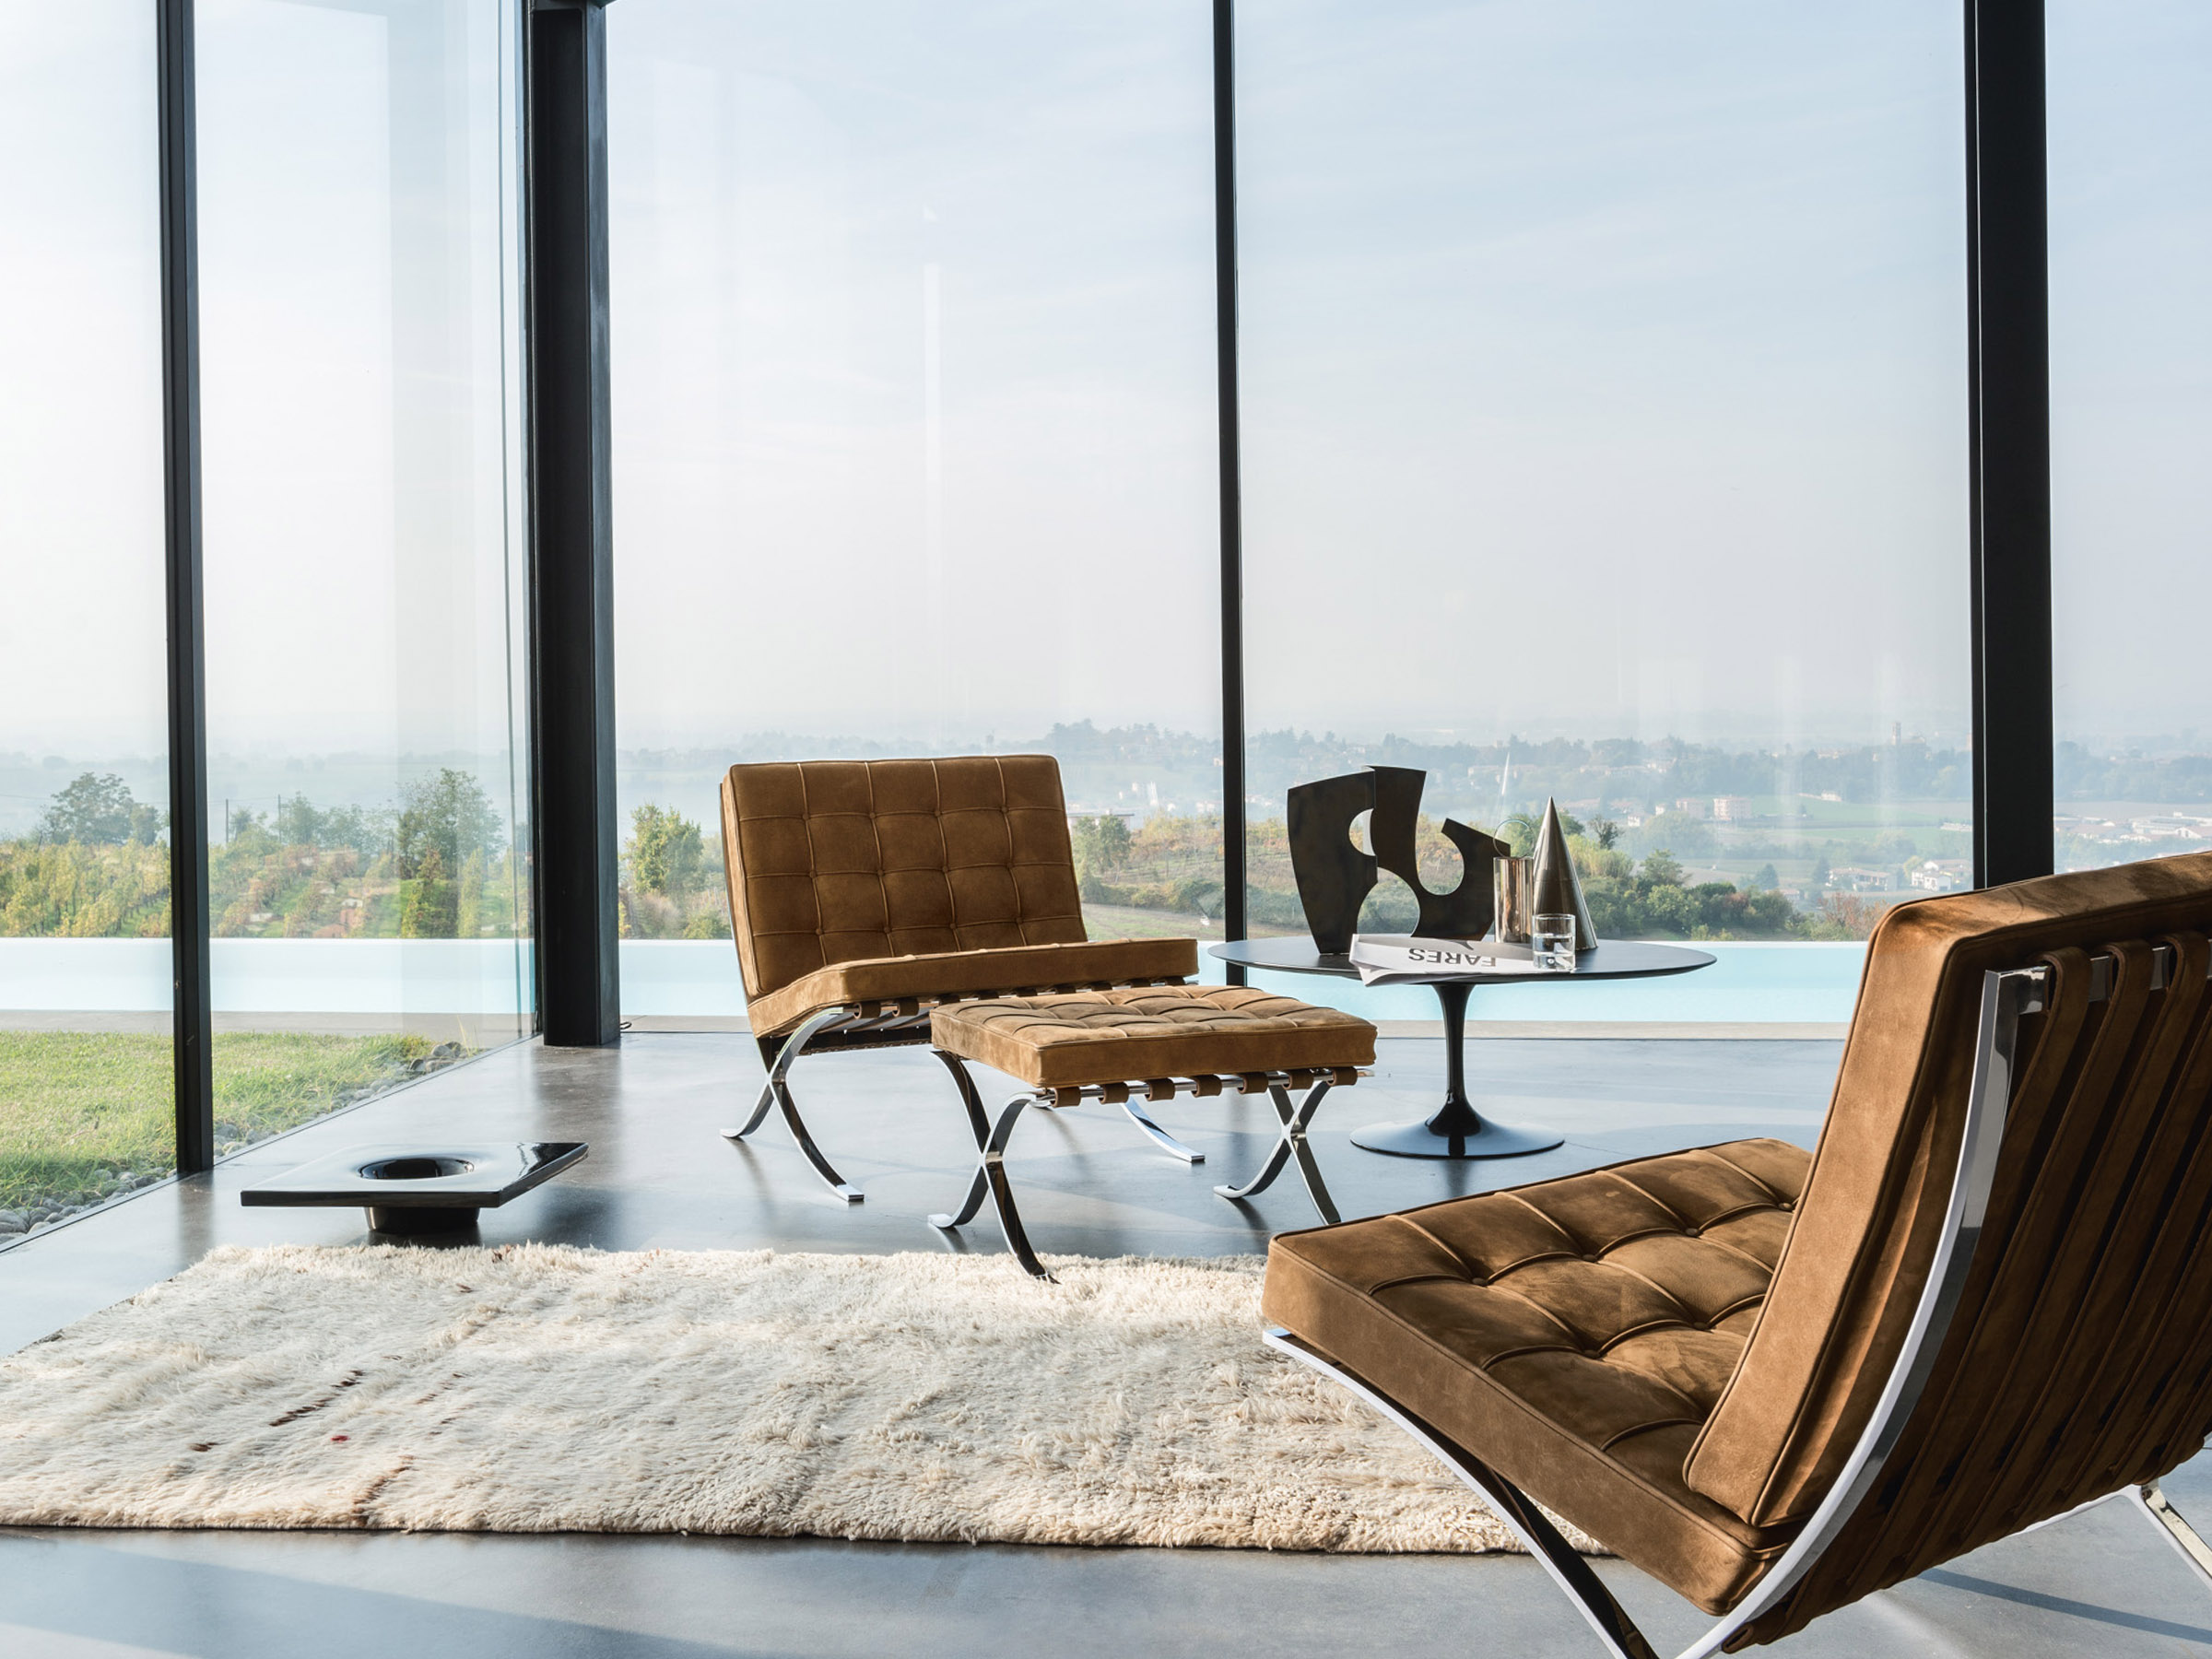 The Barcelona Chair, designed by Ludwig Mies van der Rohe and Lilly Reich. Photo credit: Courtesy of Knoll, Inc.